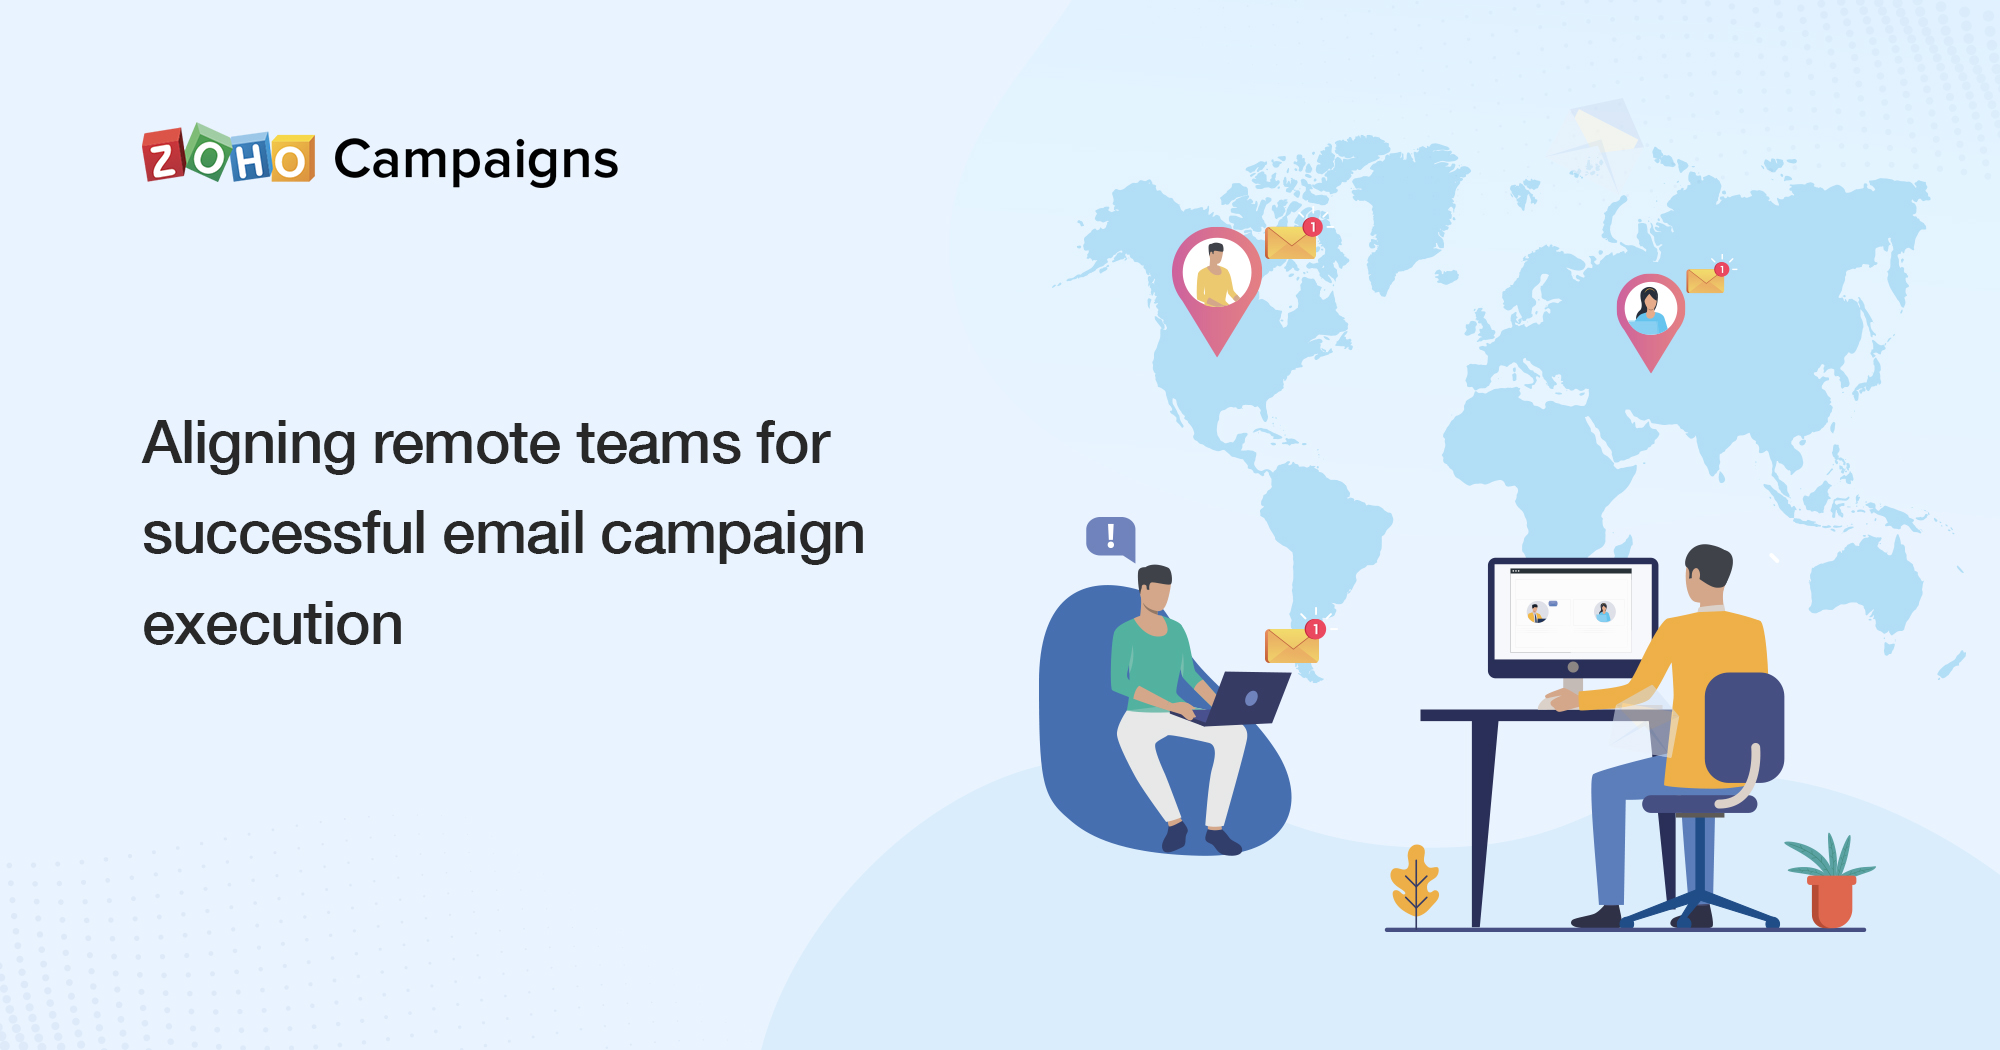 Aligning remote teams for successful email campaign execution